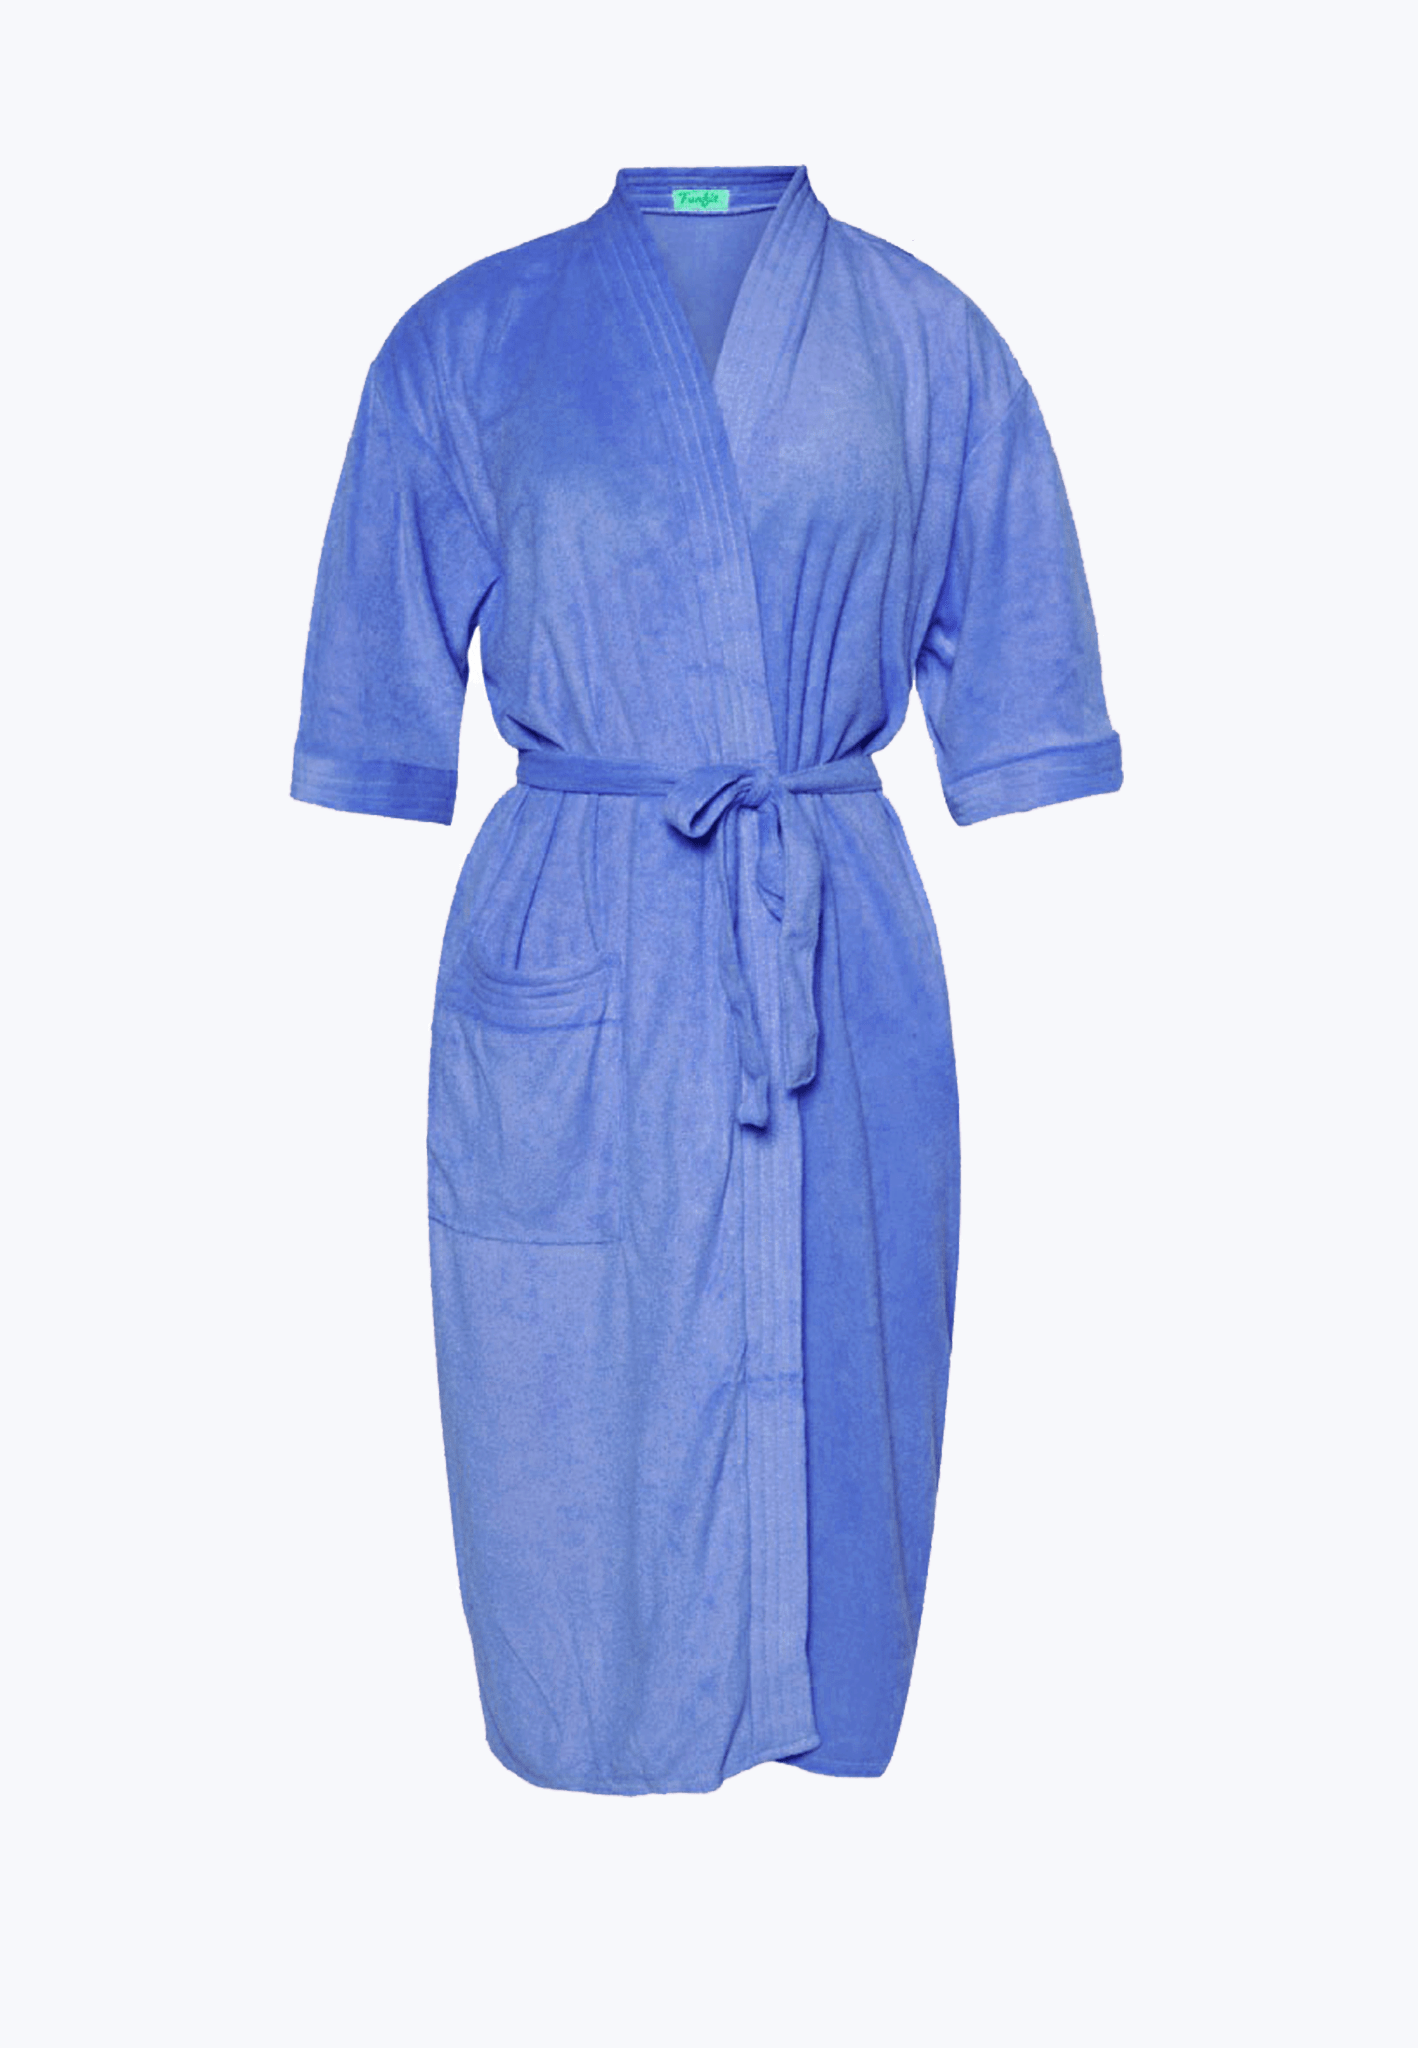 Swim Robe in Ocean Blue